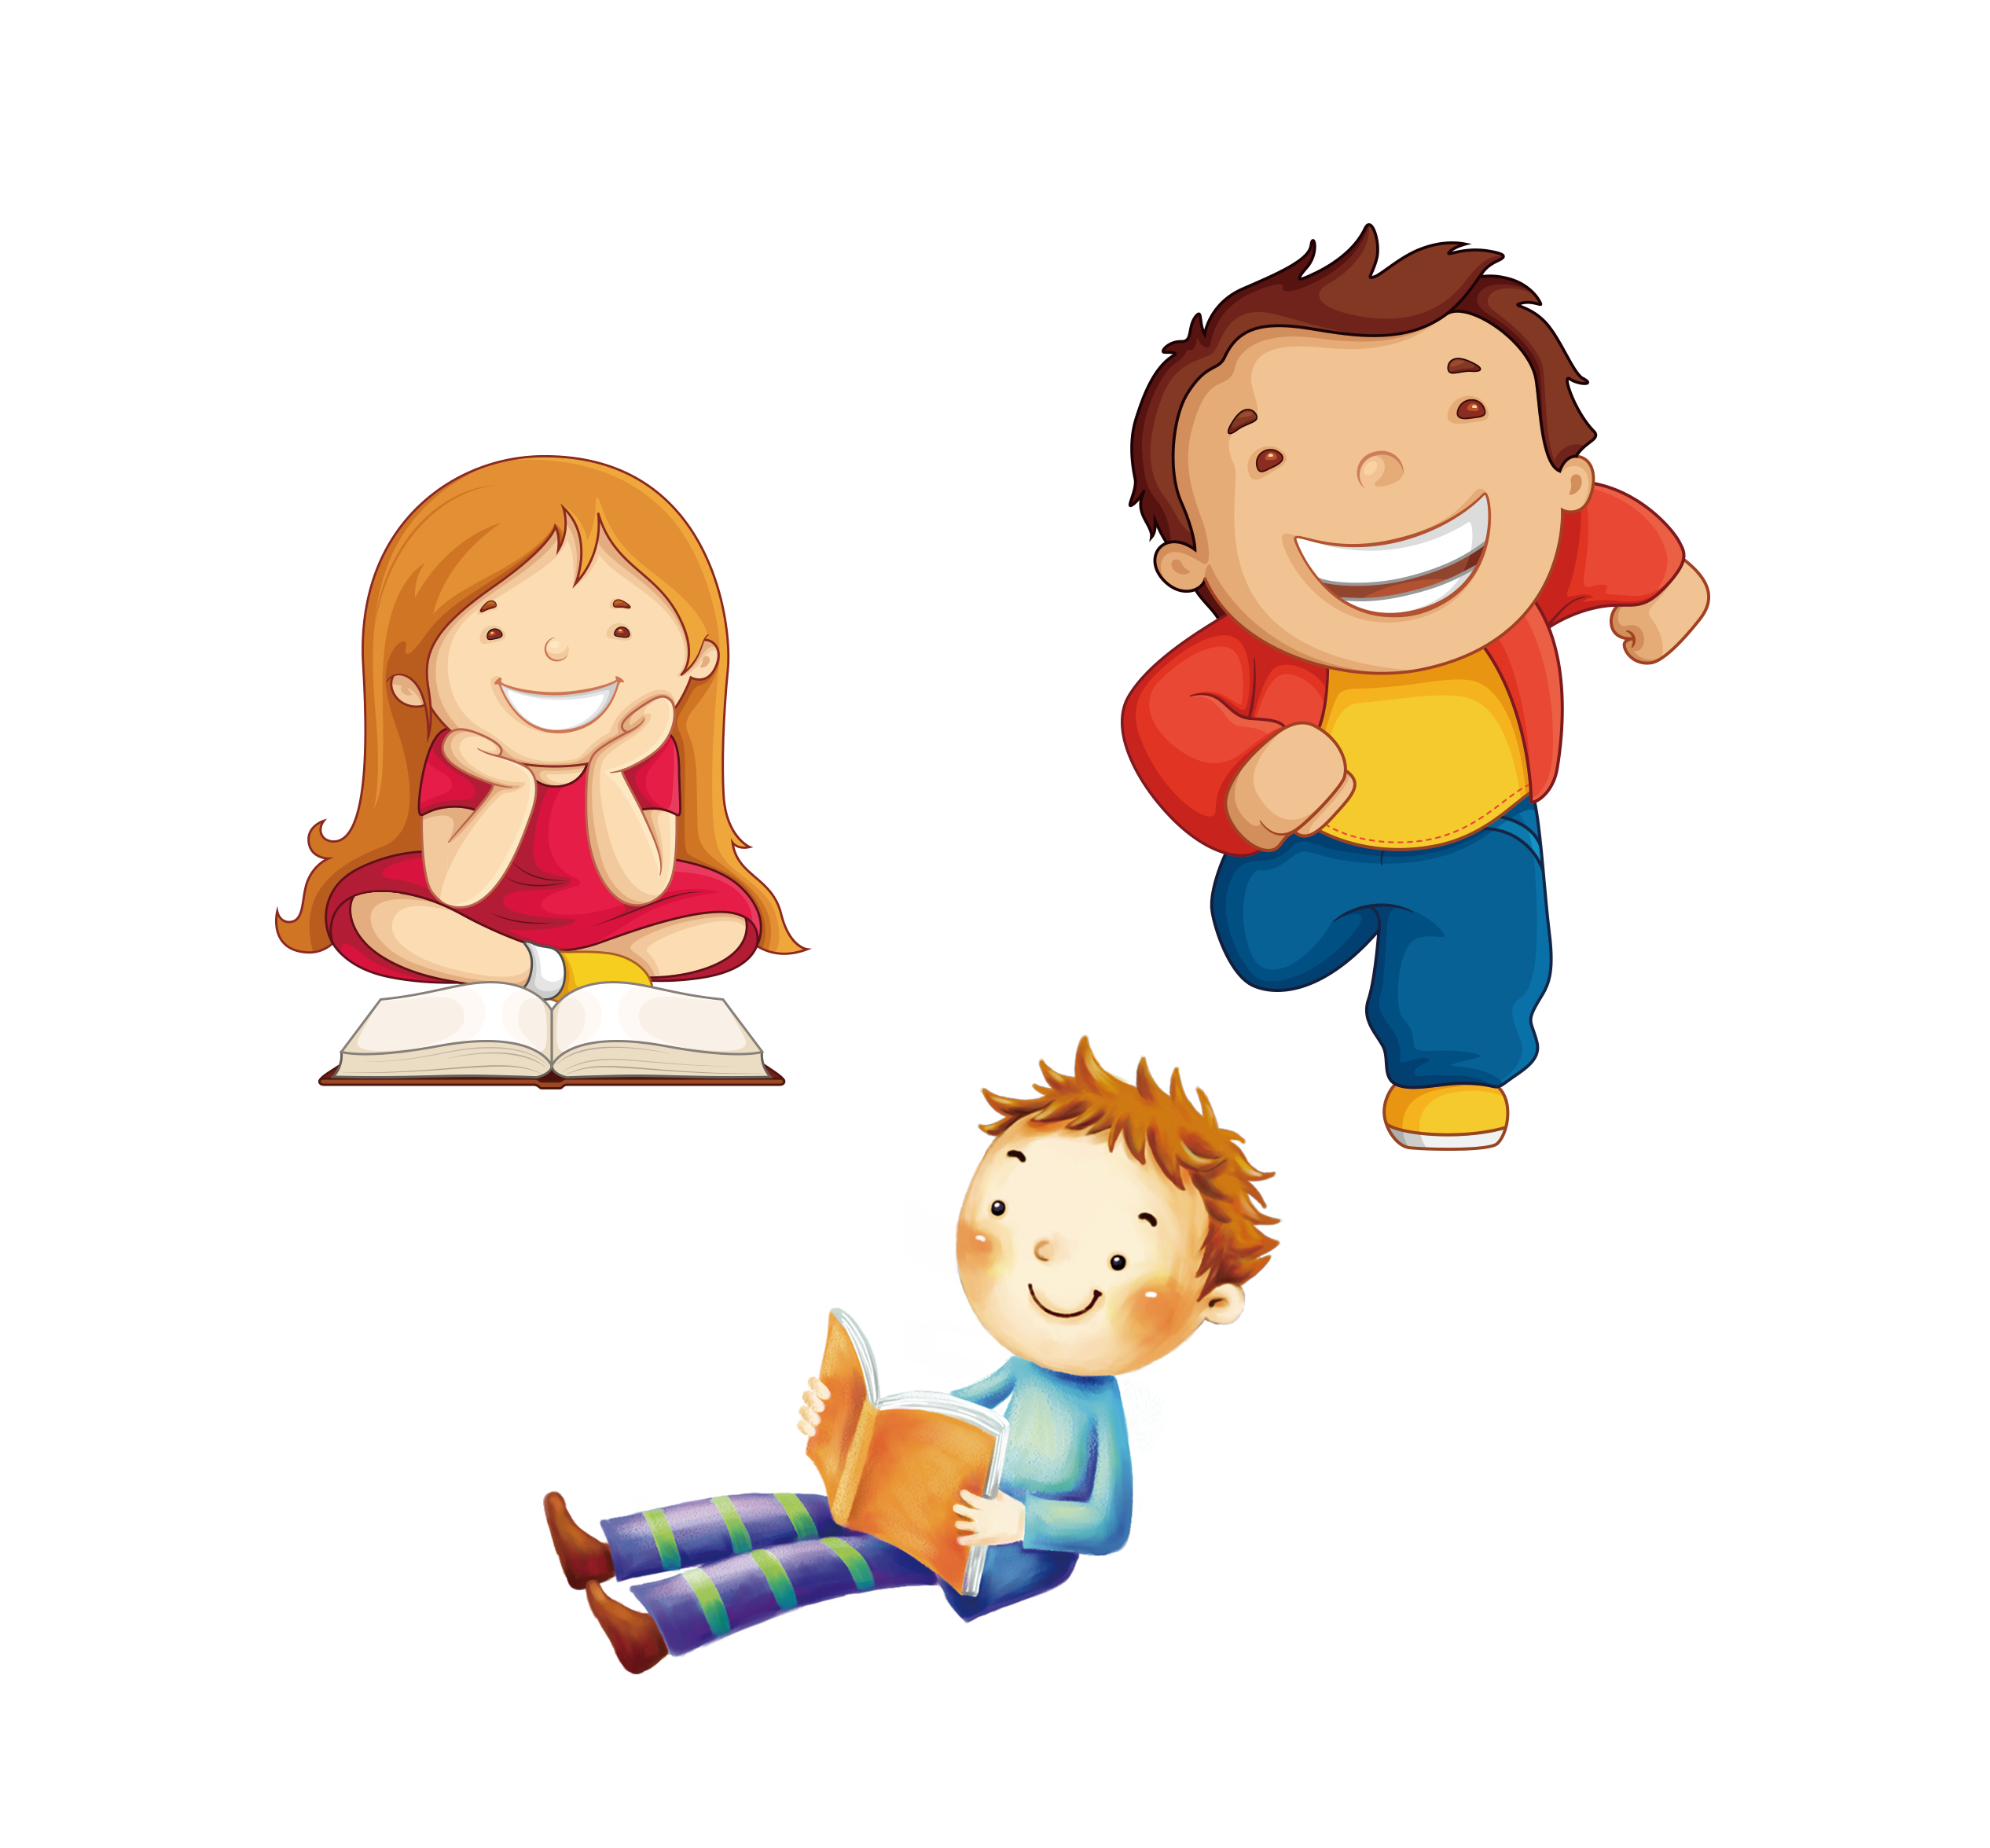 Creative cartoon clipart images gallery for free download.